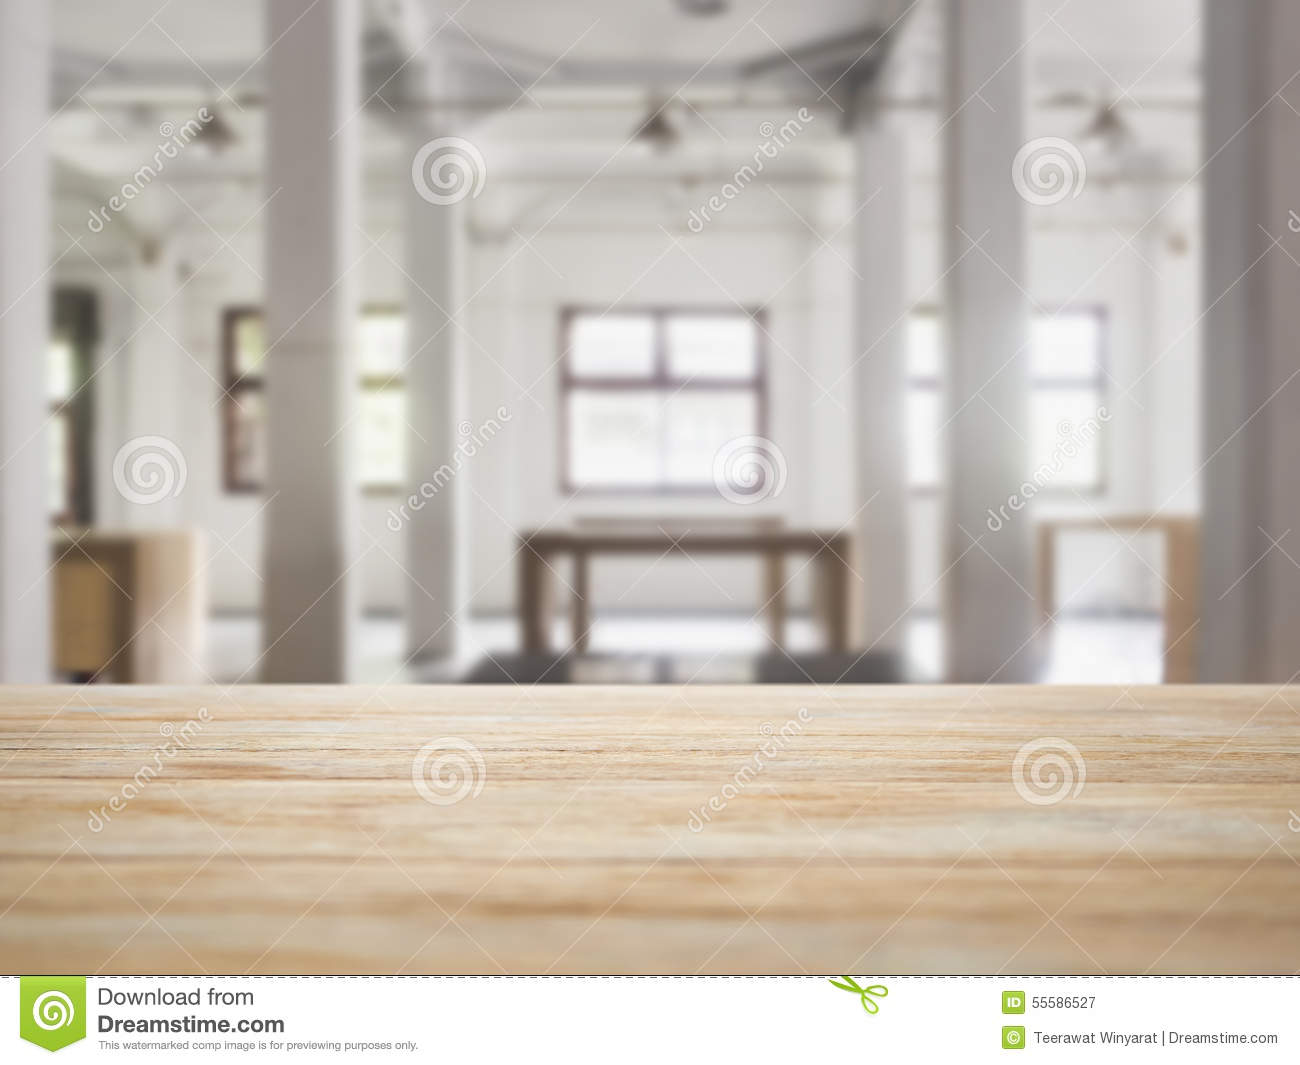 Table Top Counter With Interior Loft Space Background